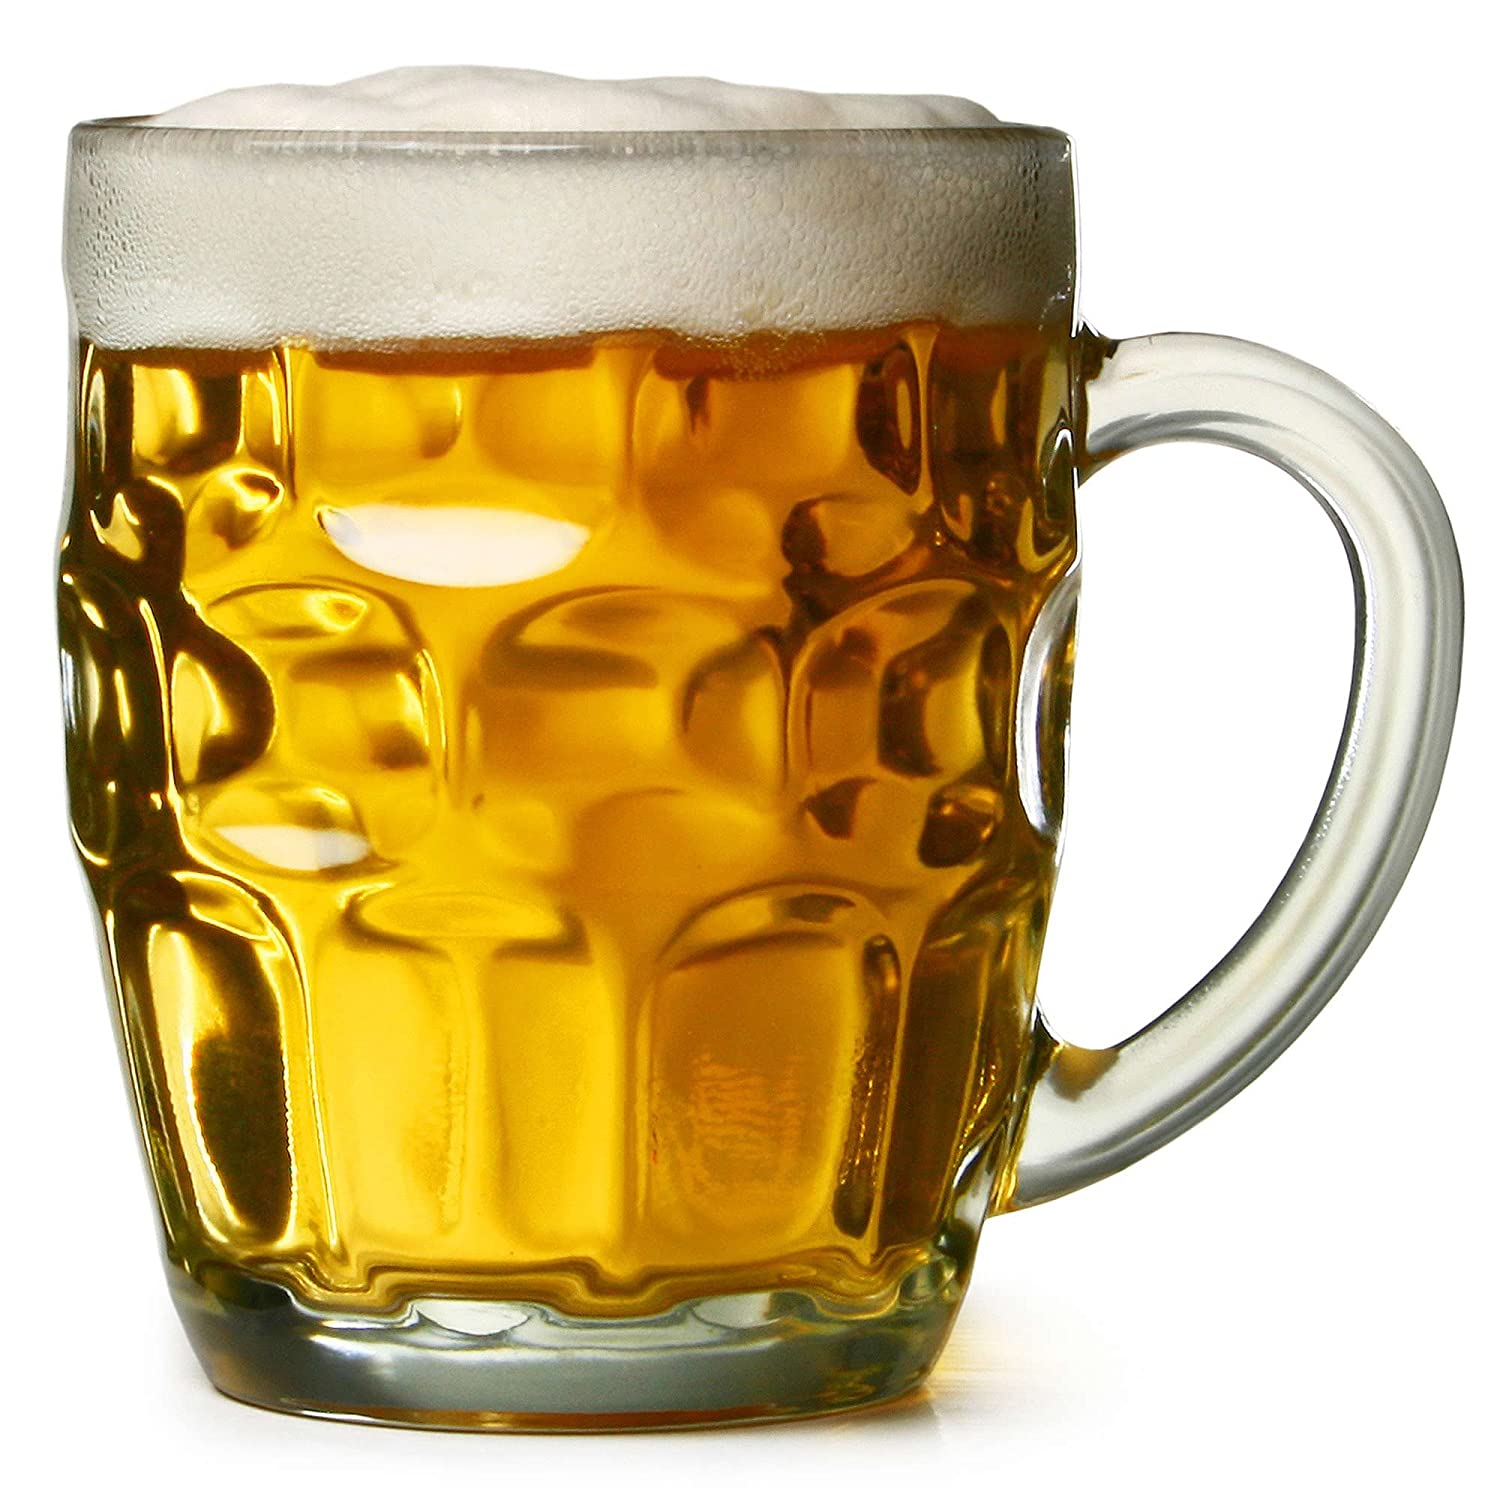 bar@drinkstuff The Great British Pint Dimple Mug - Set of 4 - Gift Boxed Glass Tankards, Great as a Beer Gift